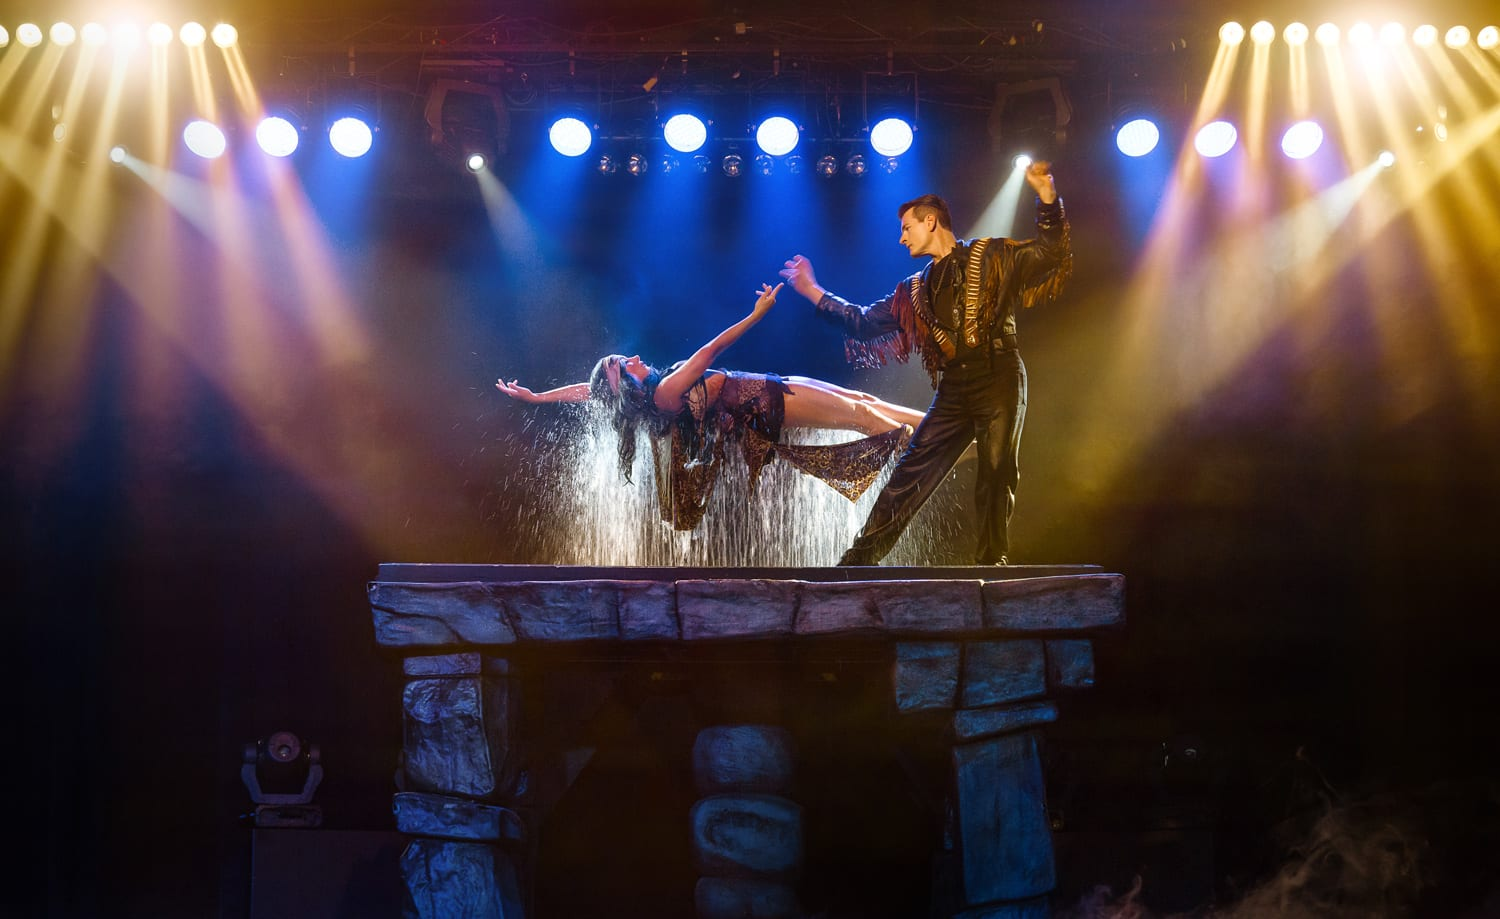 2 MAGIC SHOW TICKETS <br/> Donated by: GREG FREWIN THEATRE <br/> Valued at: $64 <br/> Buy It Now: $19